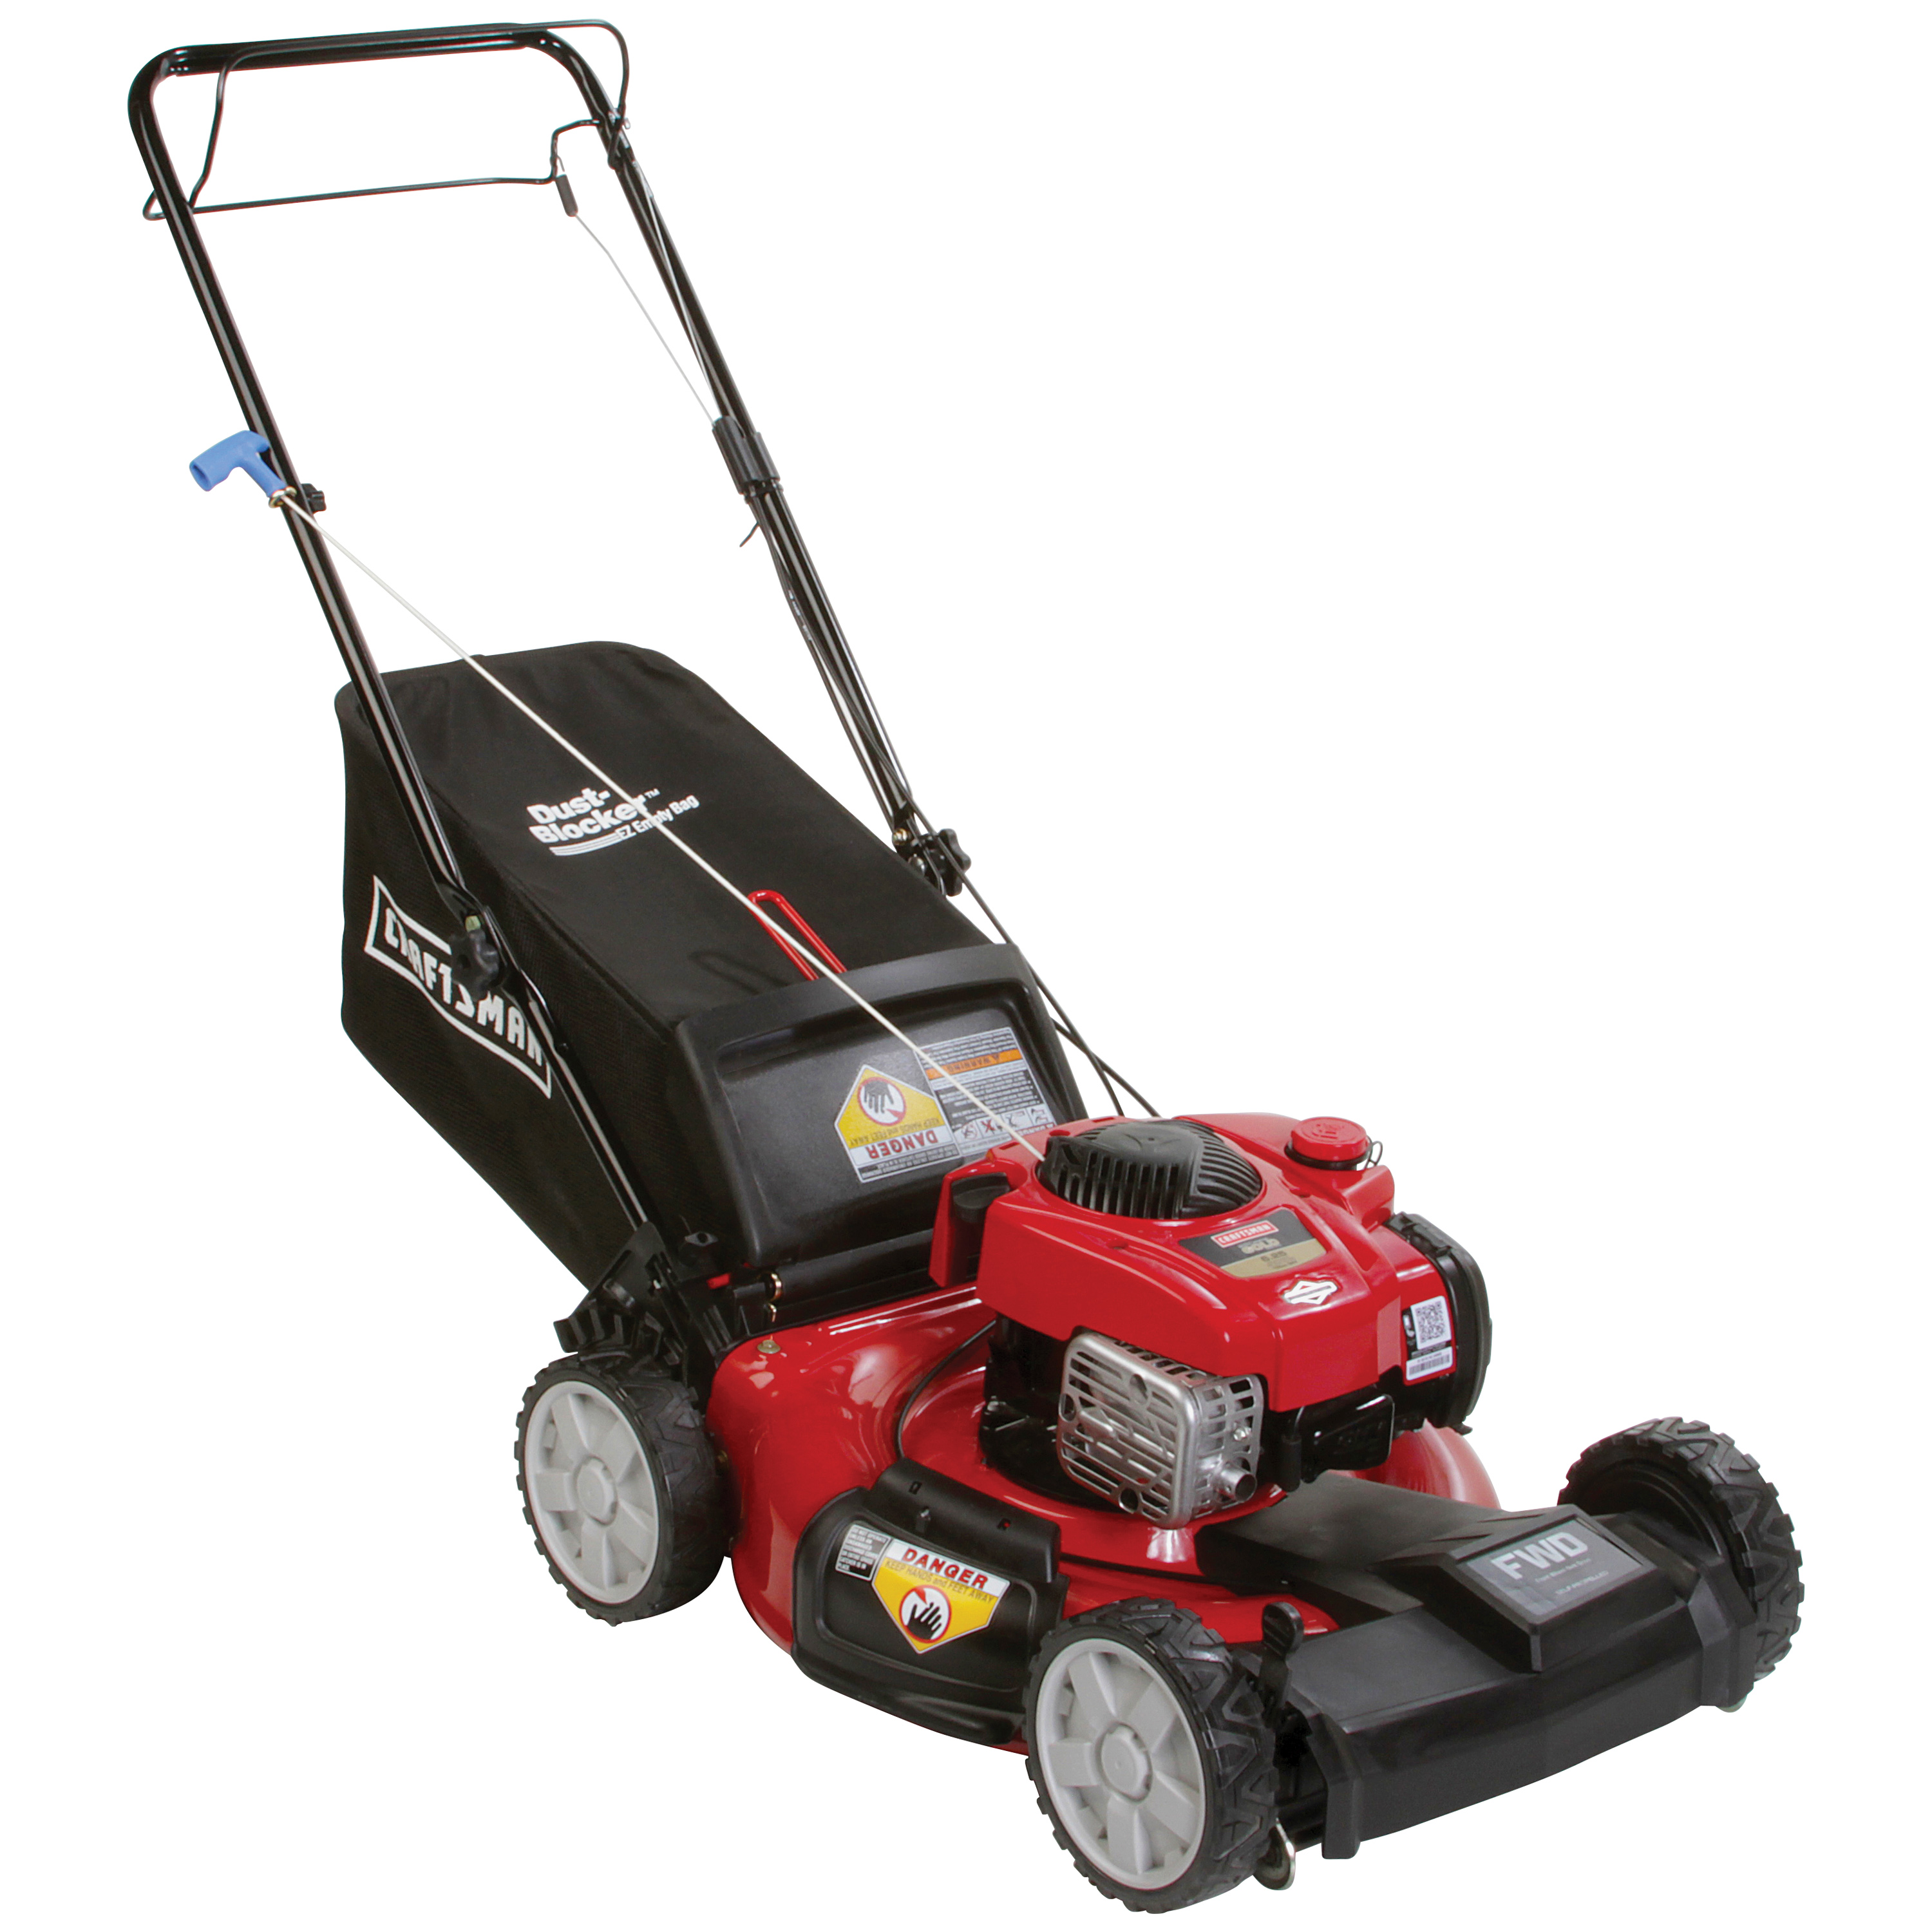 Lawn Mower Craftsman 37700 150cc 21 Quot Just Check And Add Front Wheel